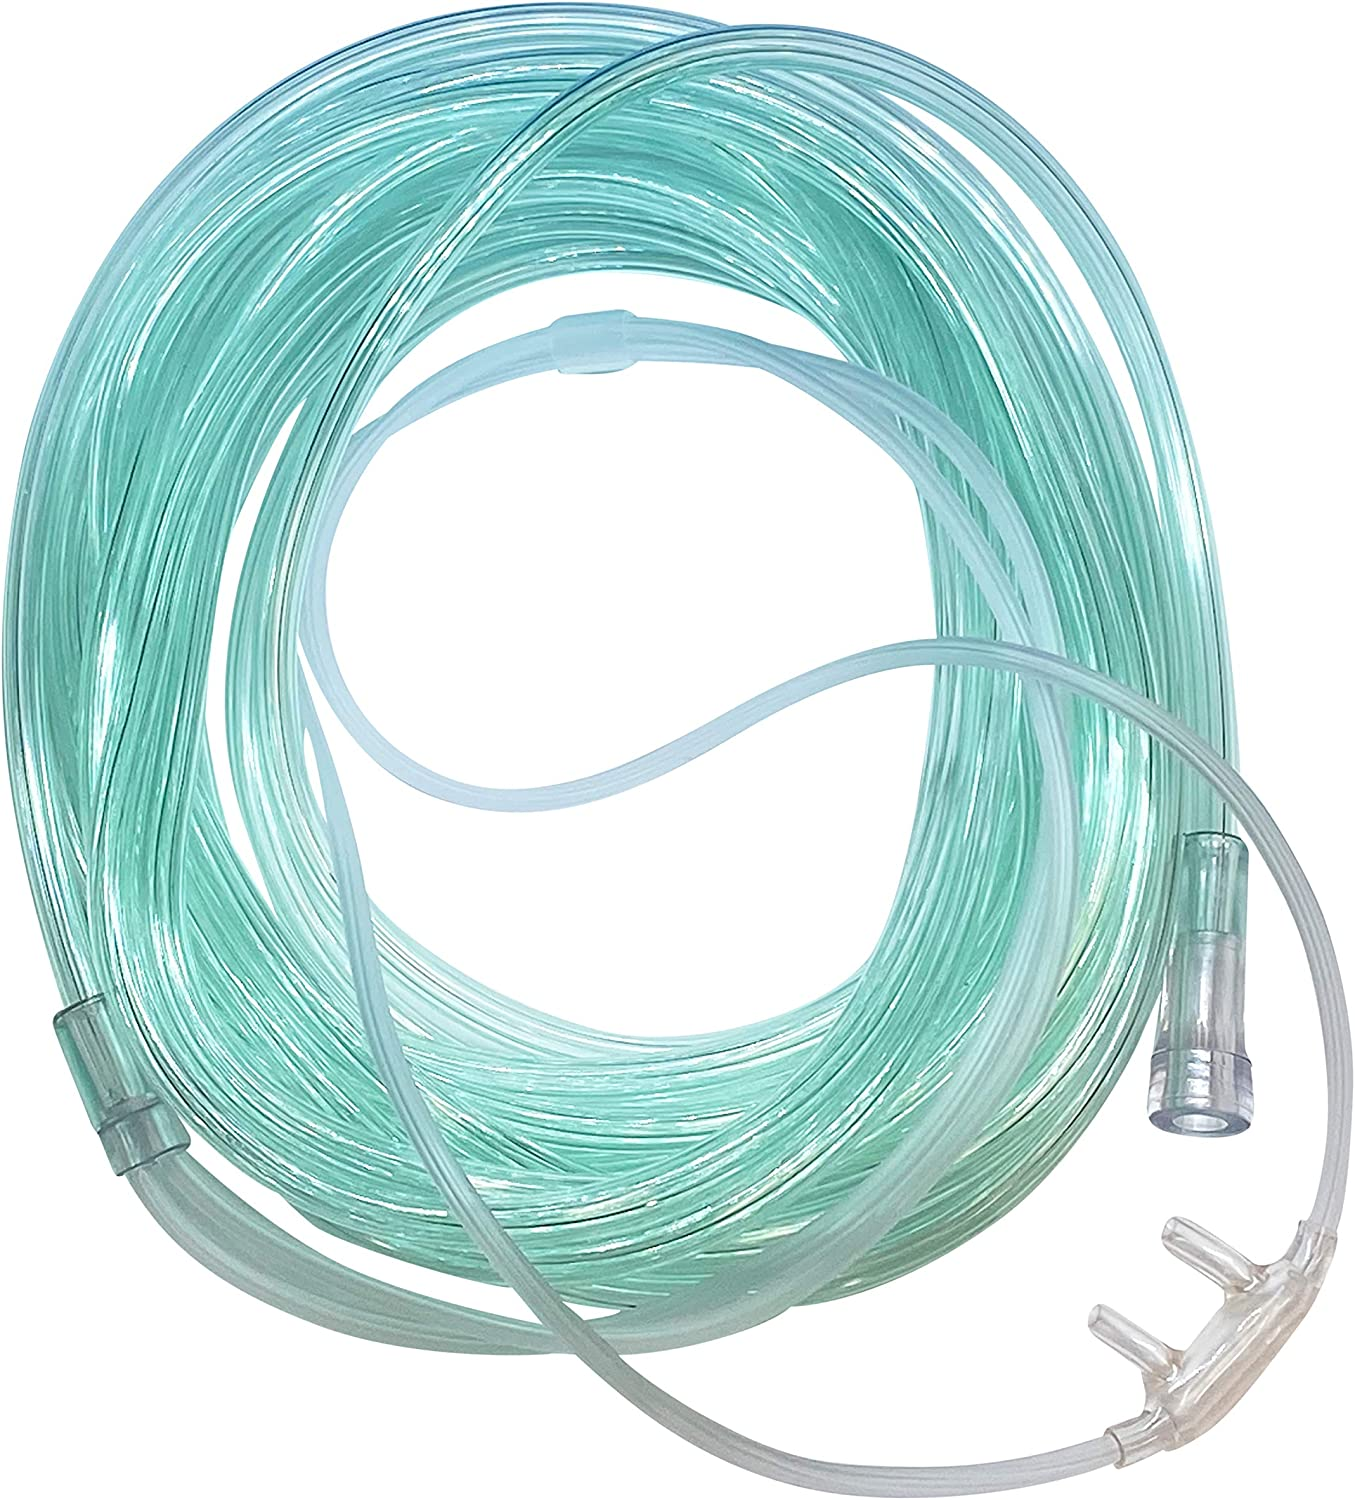 1-Pack Westmed #0589 Adult Comfort Soft Plus Cannula with 25' Kink Resistant Tubing